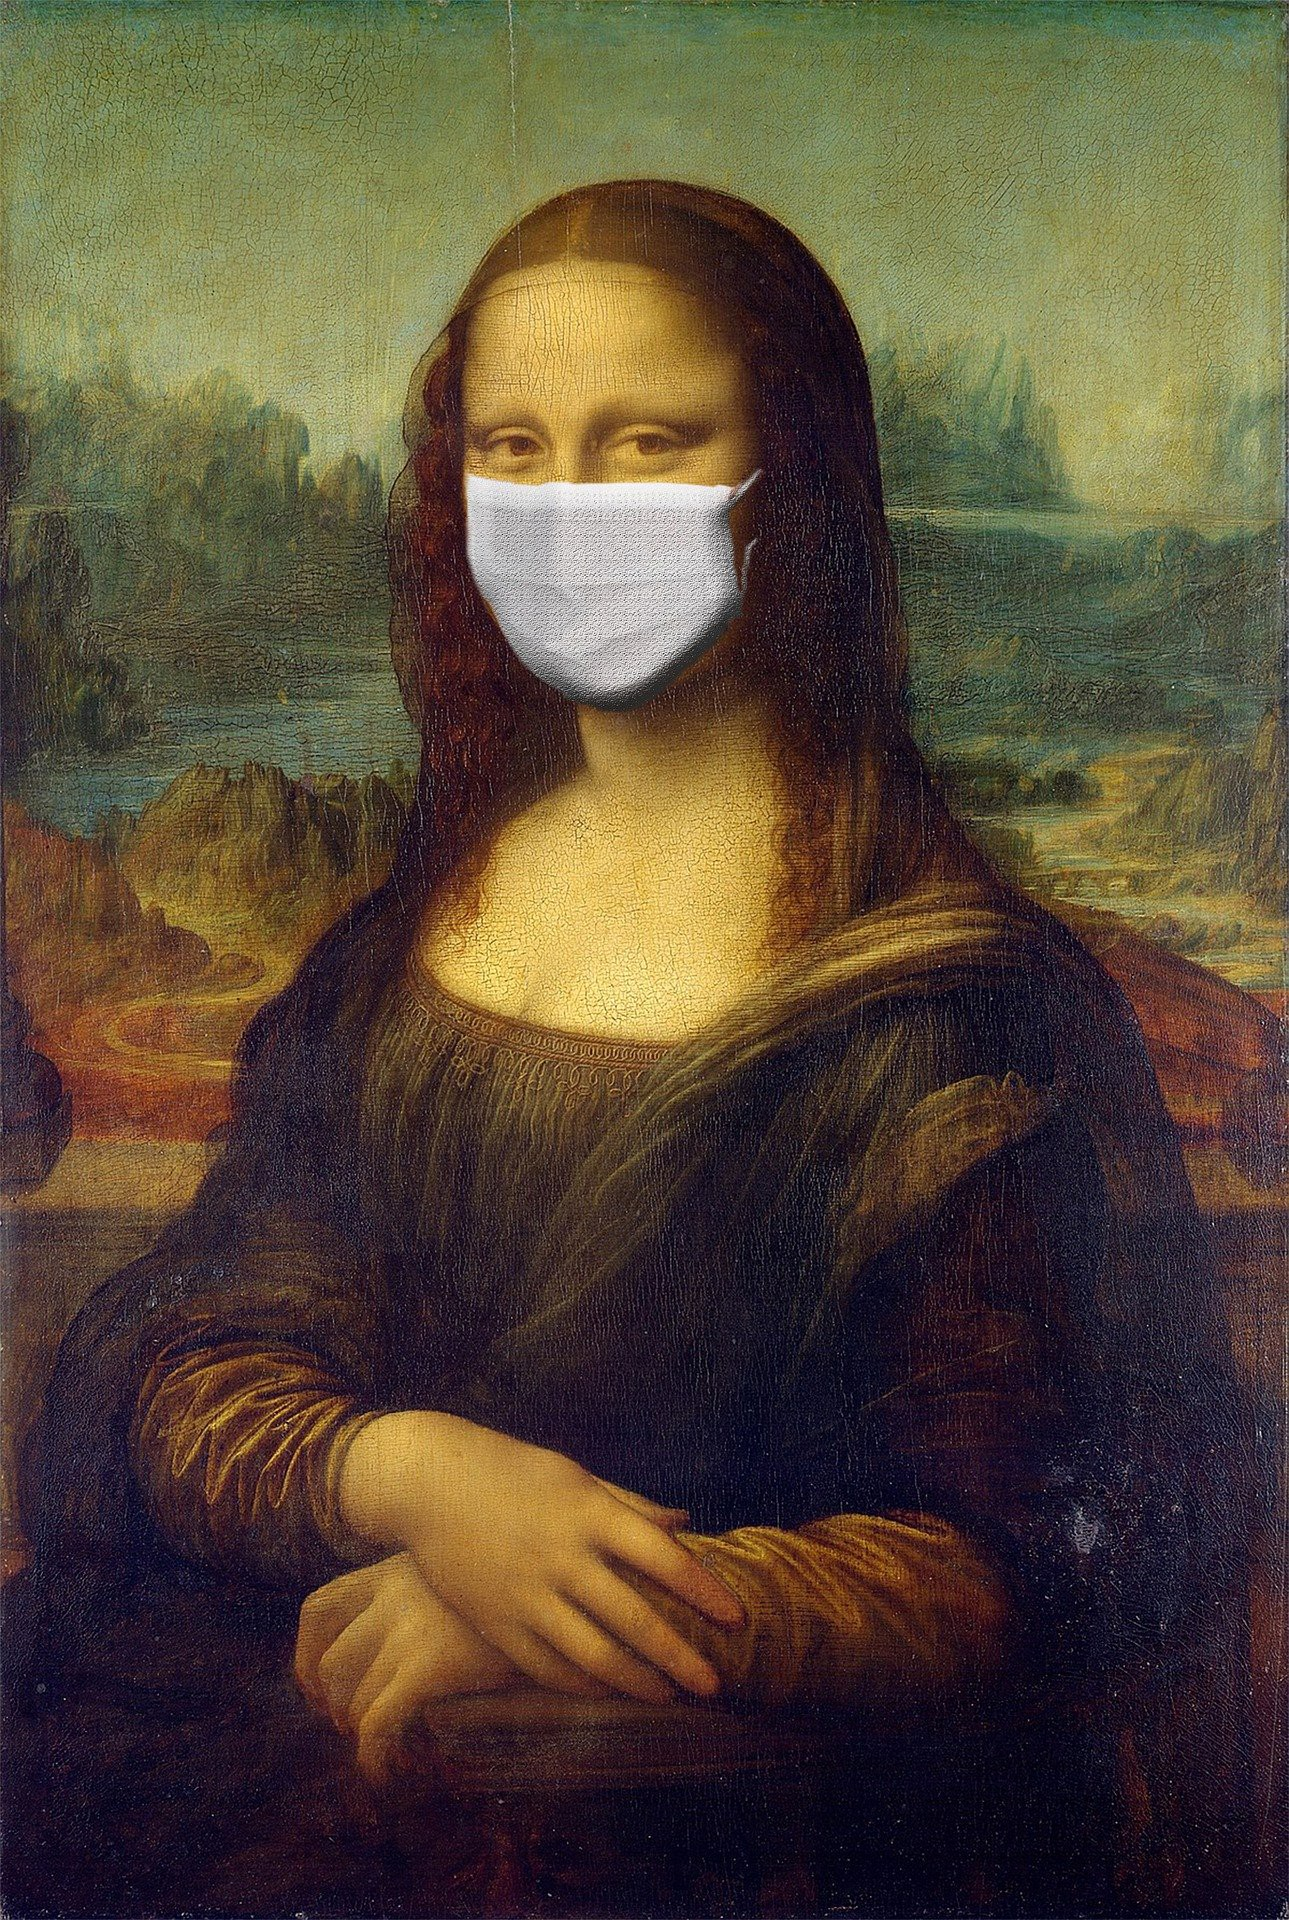 Mona Lisa Pic. downloaded from Pixabay